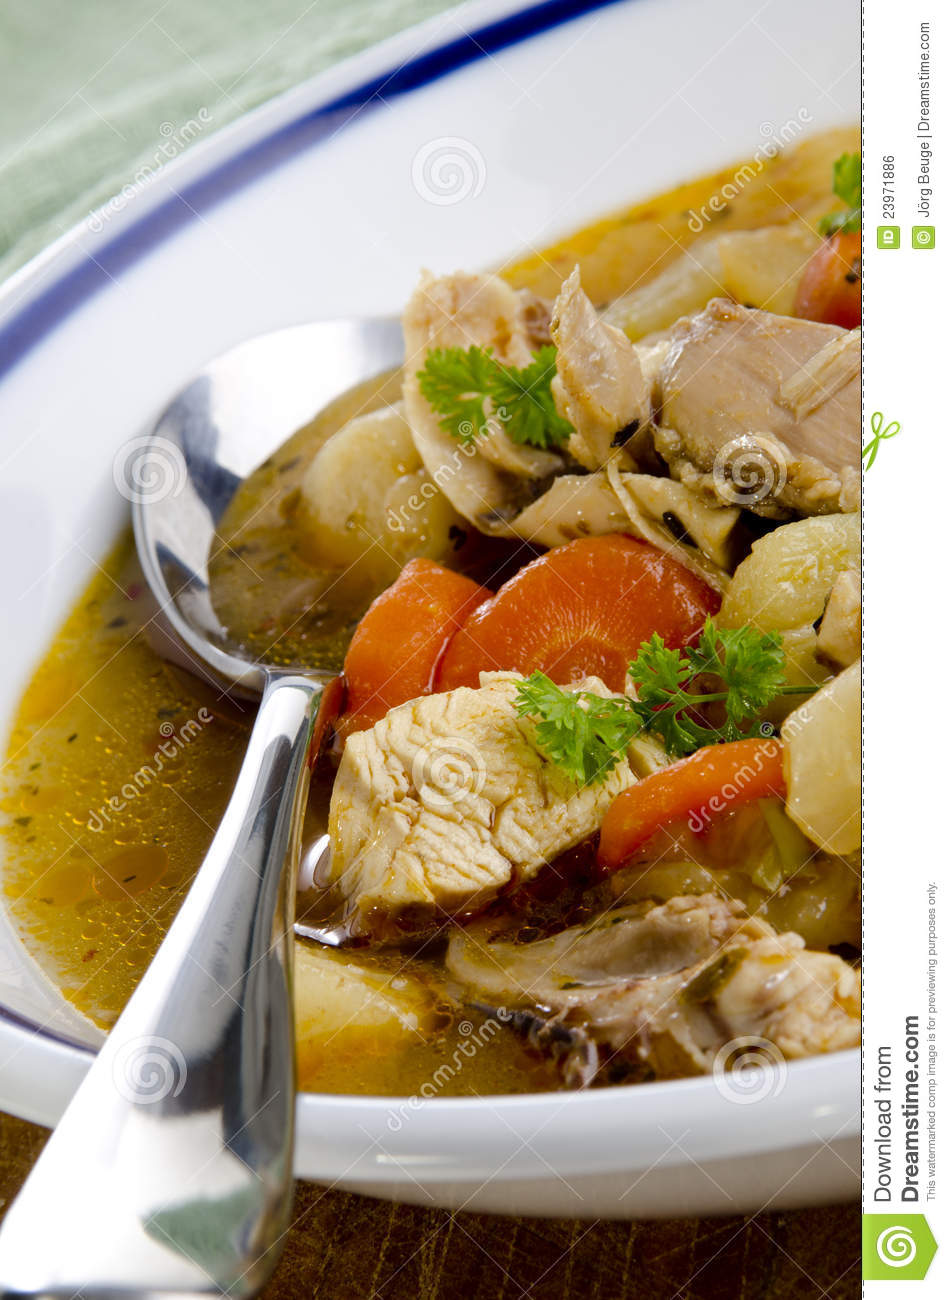 Stew with pork, carrots and potato